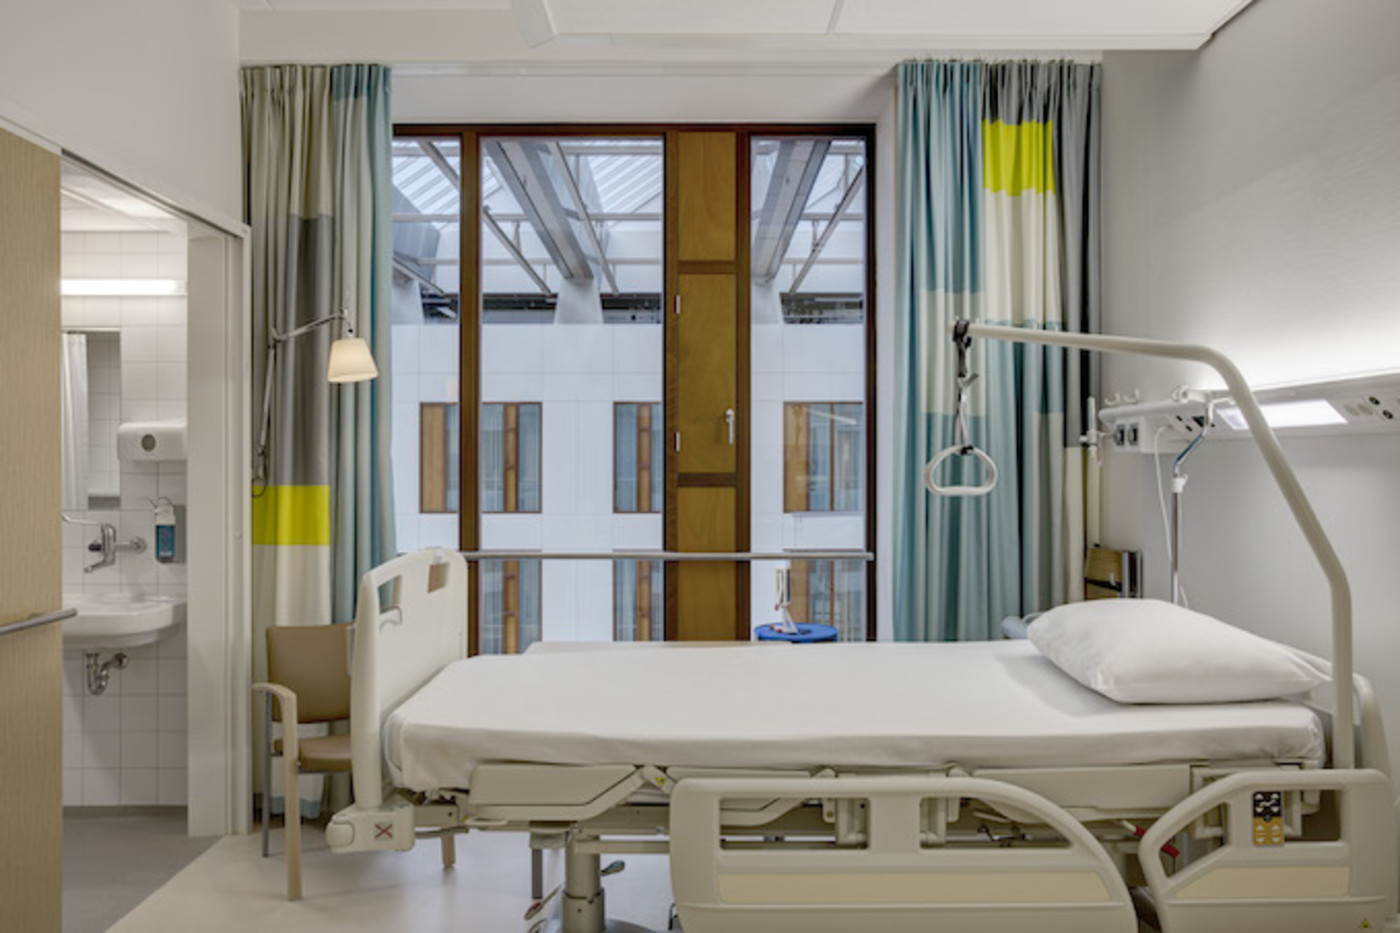 Bed in hospital room